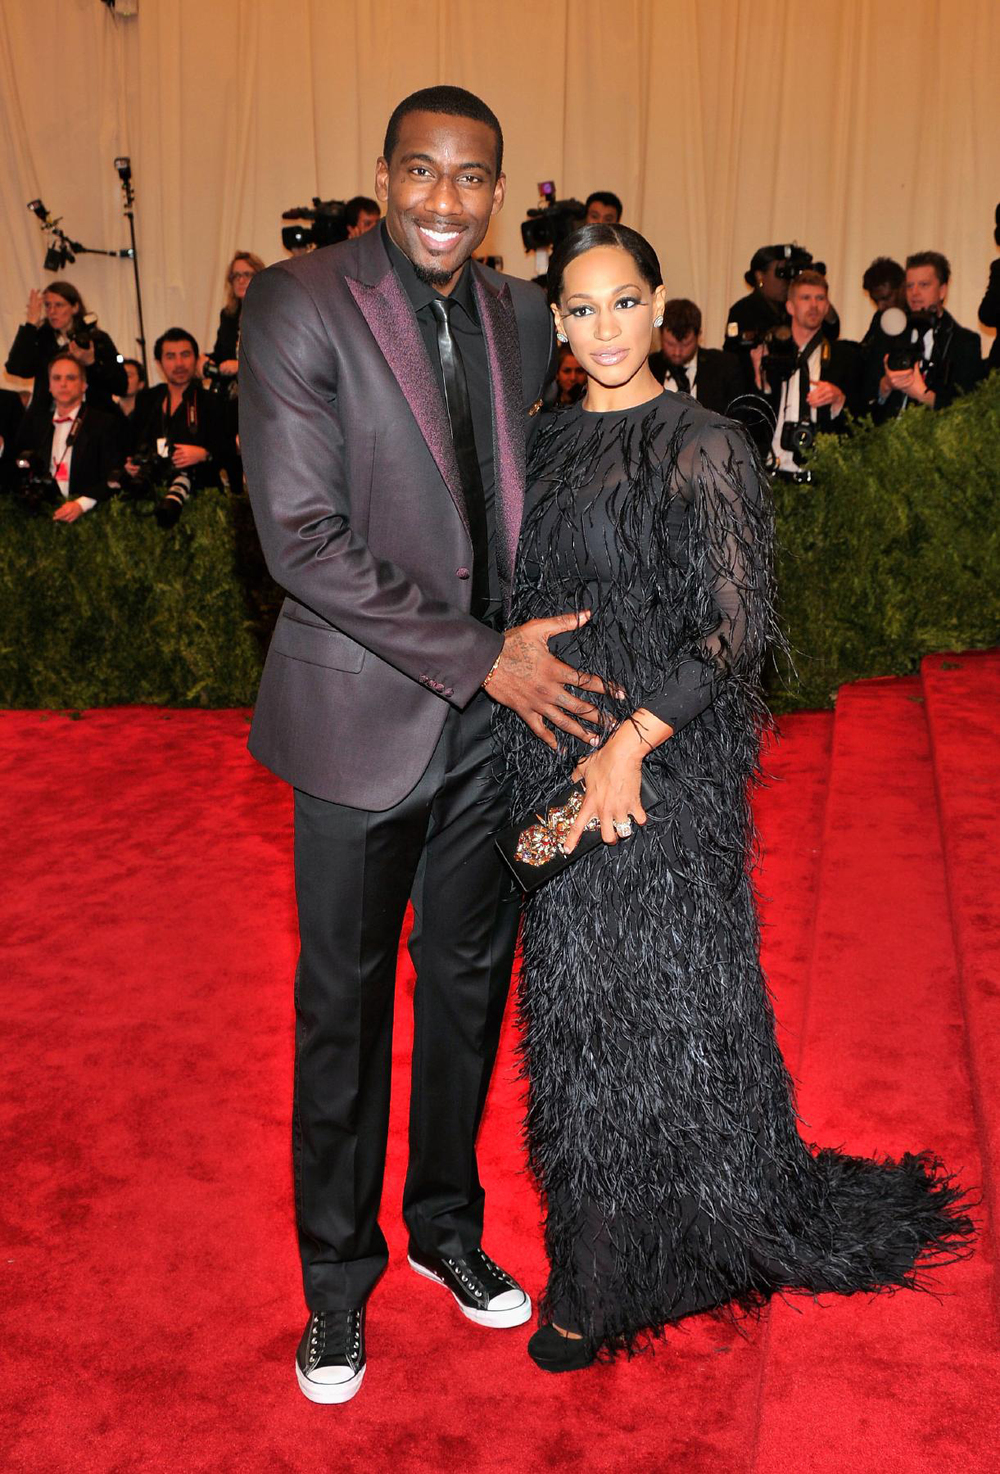 2013 Met Gala: Mother-to-be Alexis Welch was glowing in a black feathered Giambattista Valli gown, accompanied by her husband Amar'e Stoudemire.